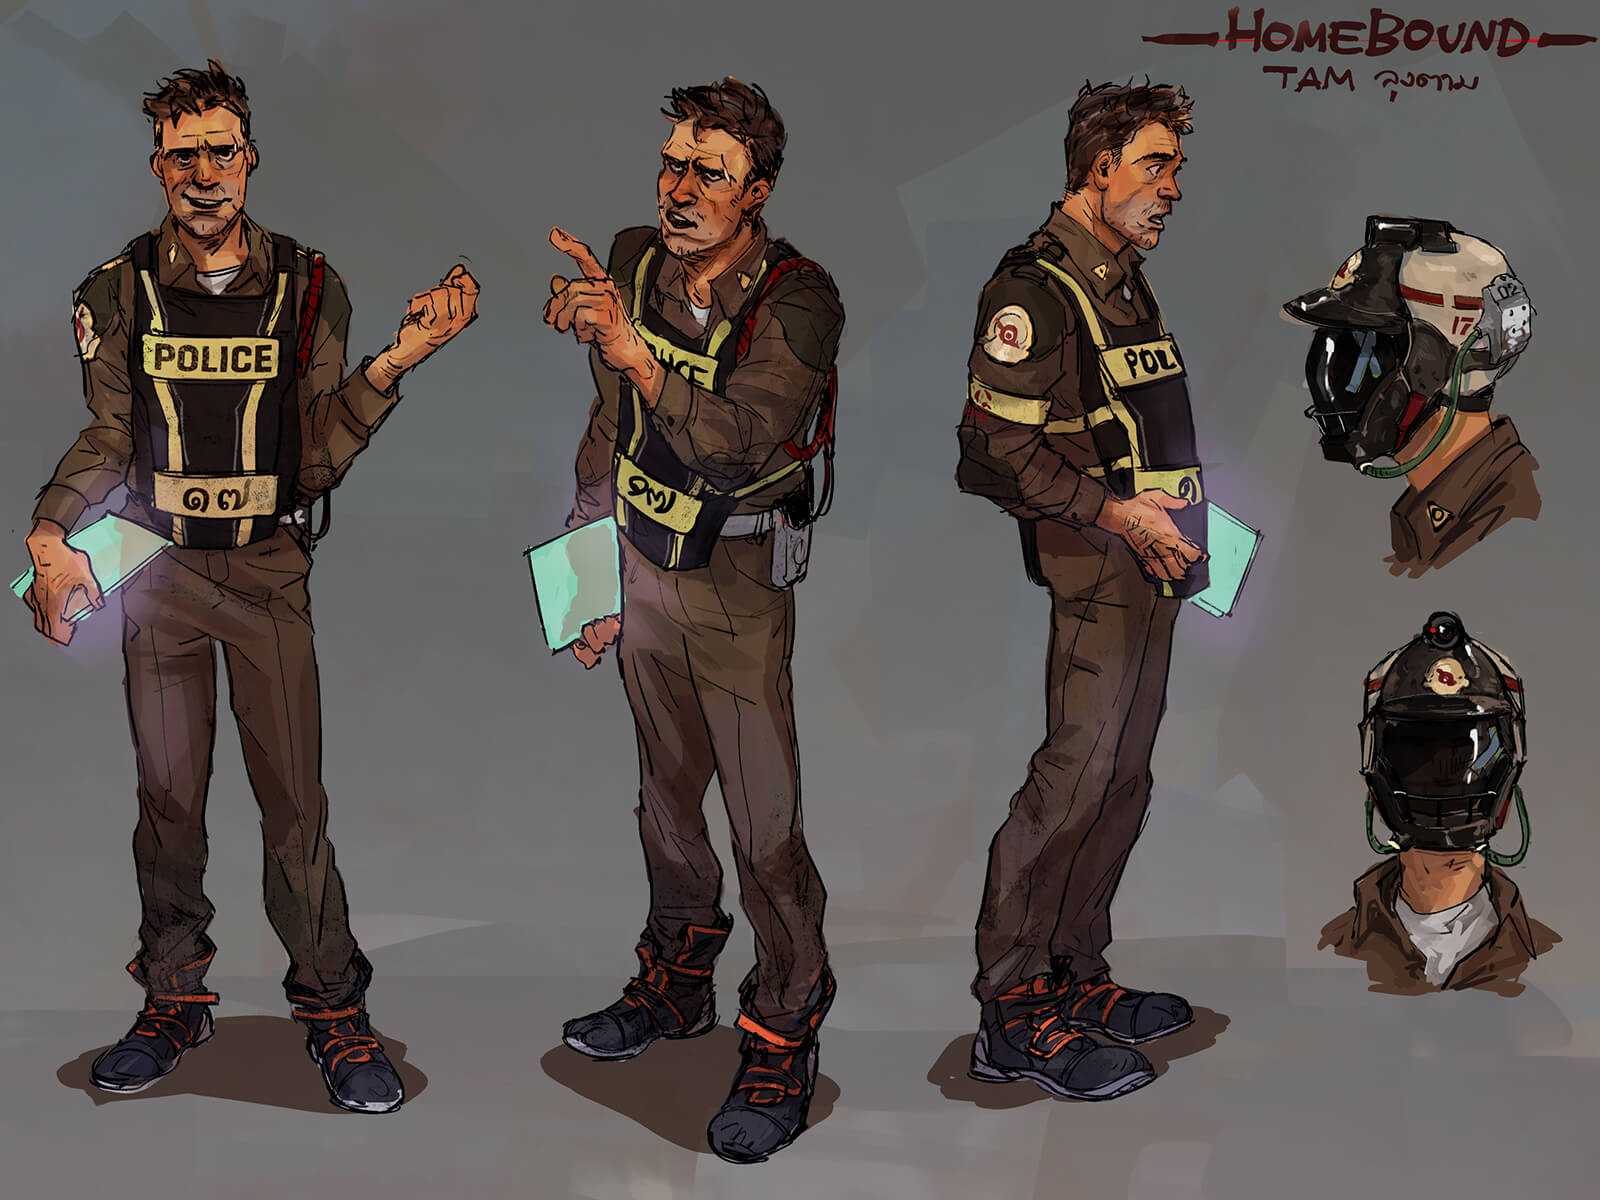 Various poses of a rumpled policeman character